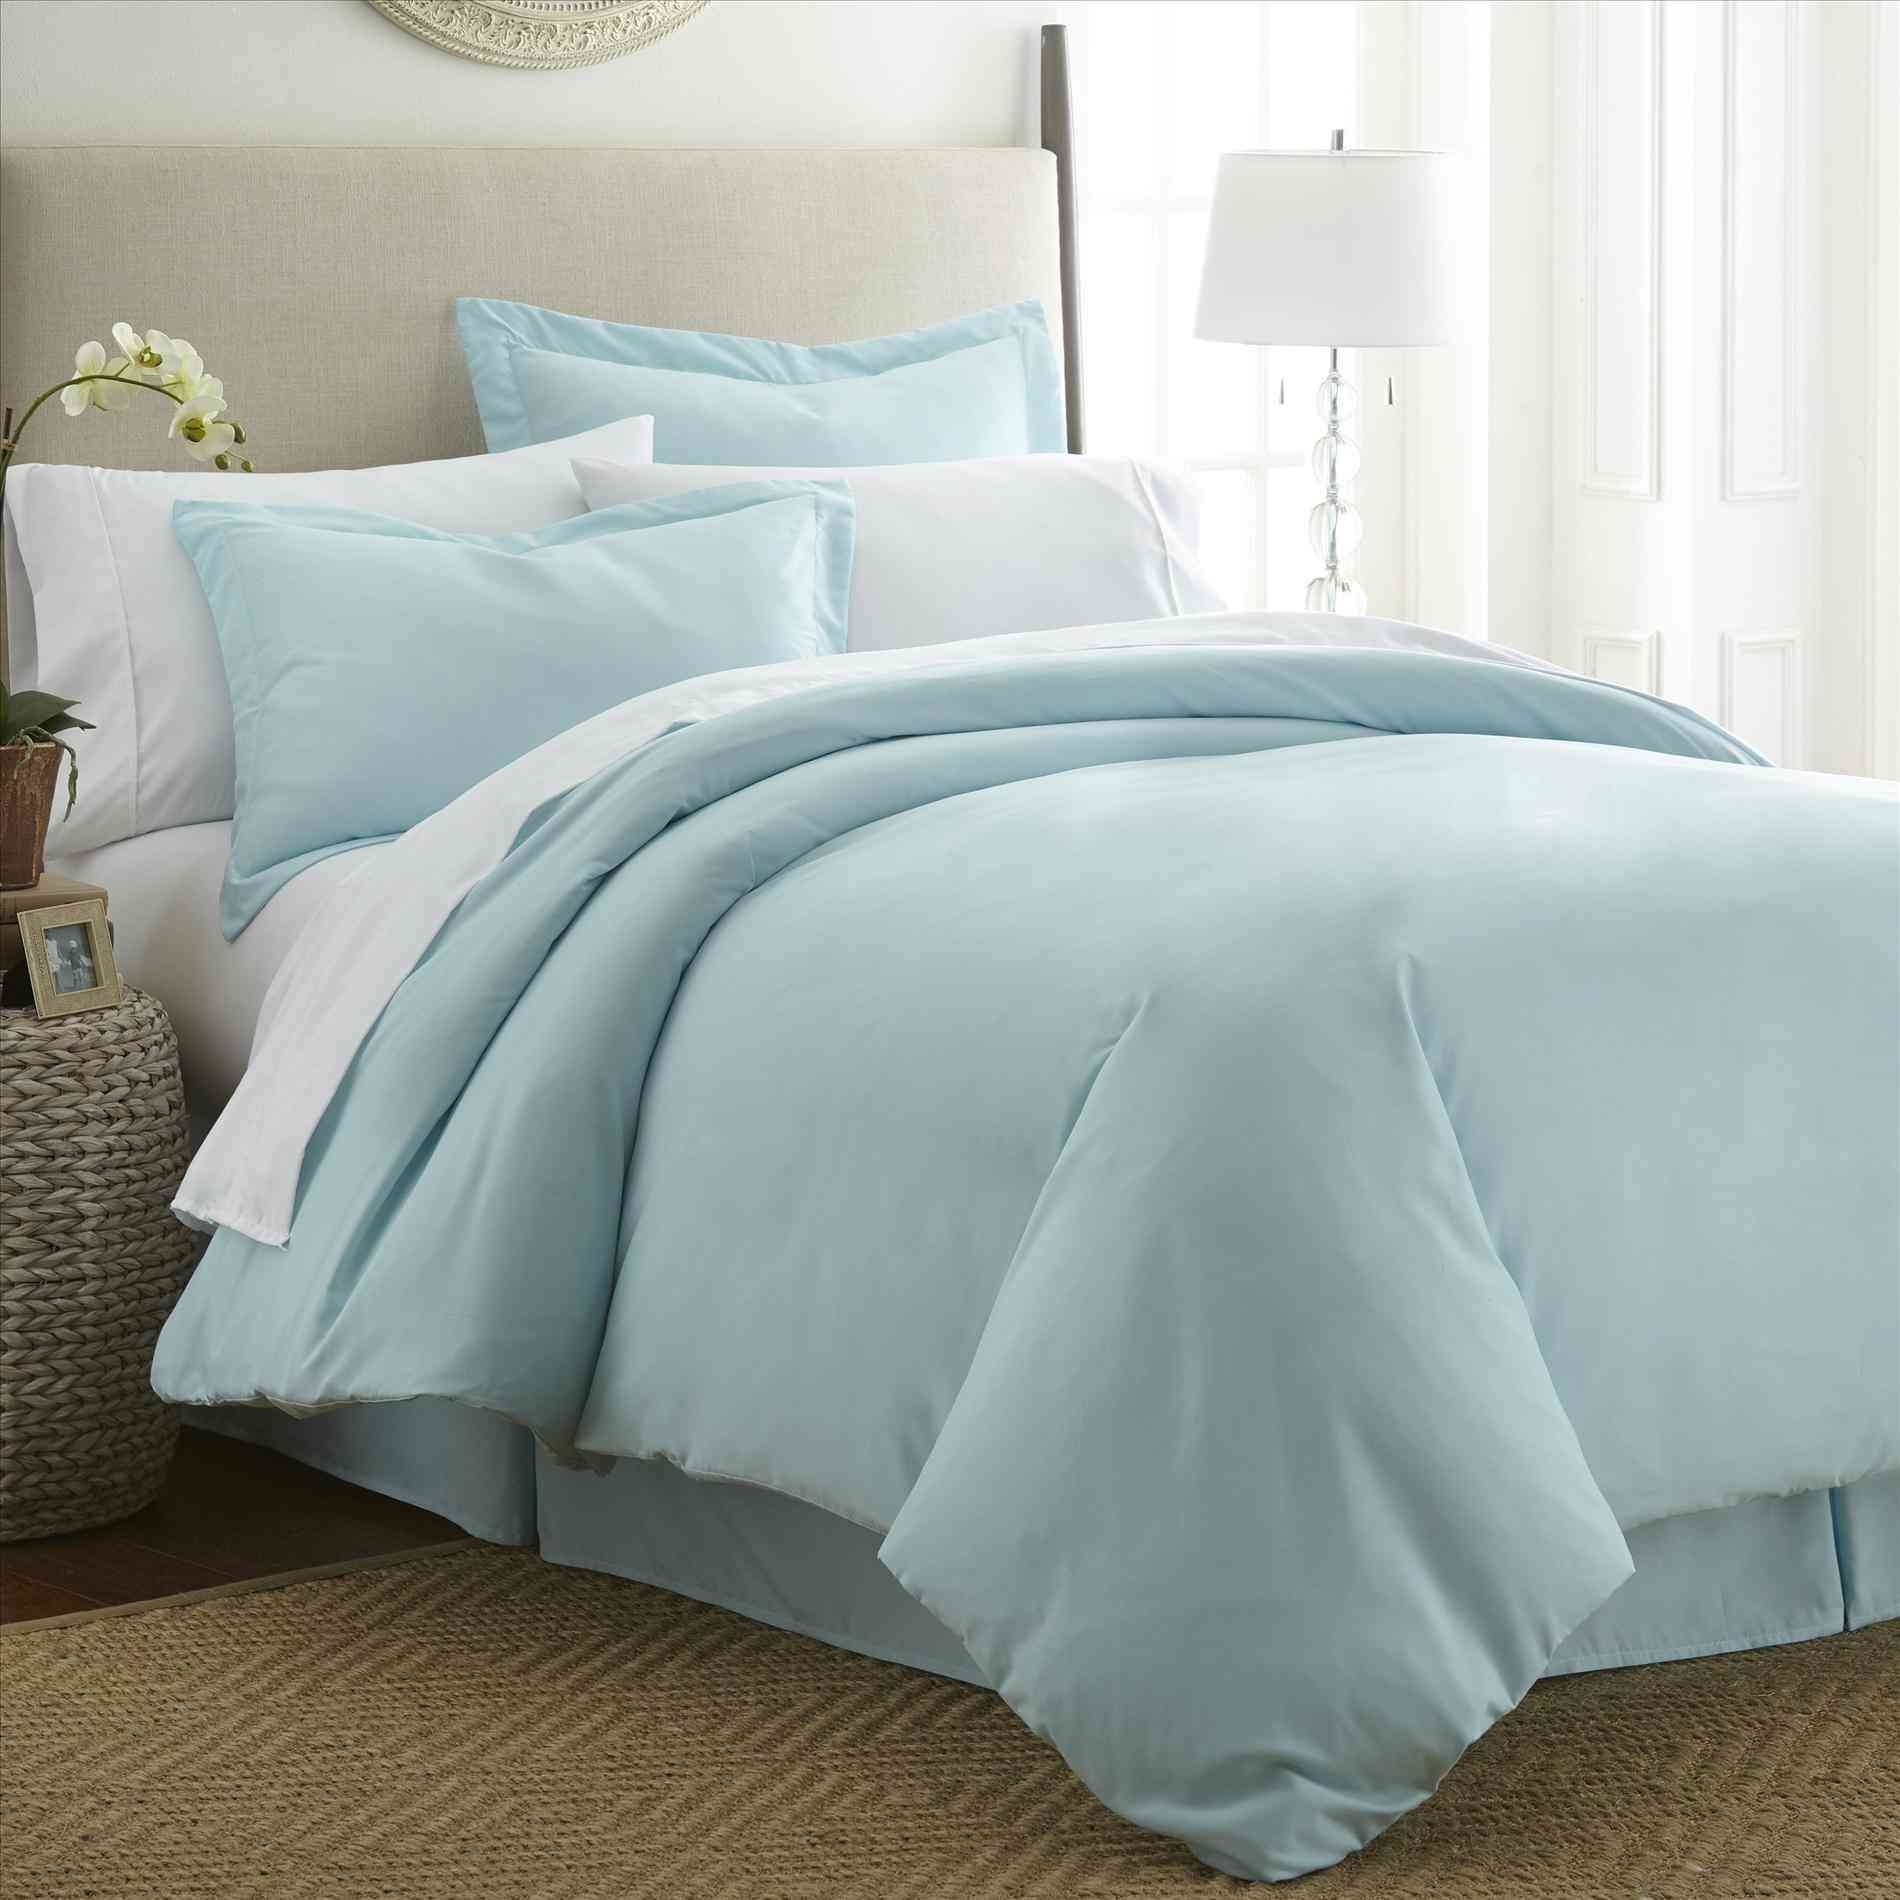 New Post Matching Bedroom And Bathroom Sets  Duvet Cover Sets Luxury Duvet Covers Soft Duvet